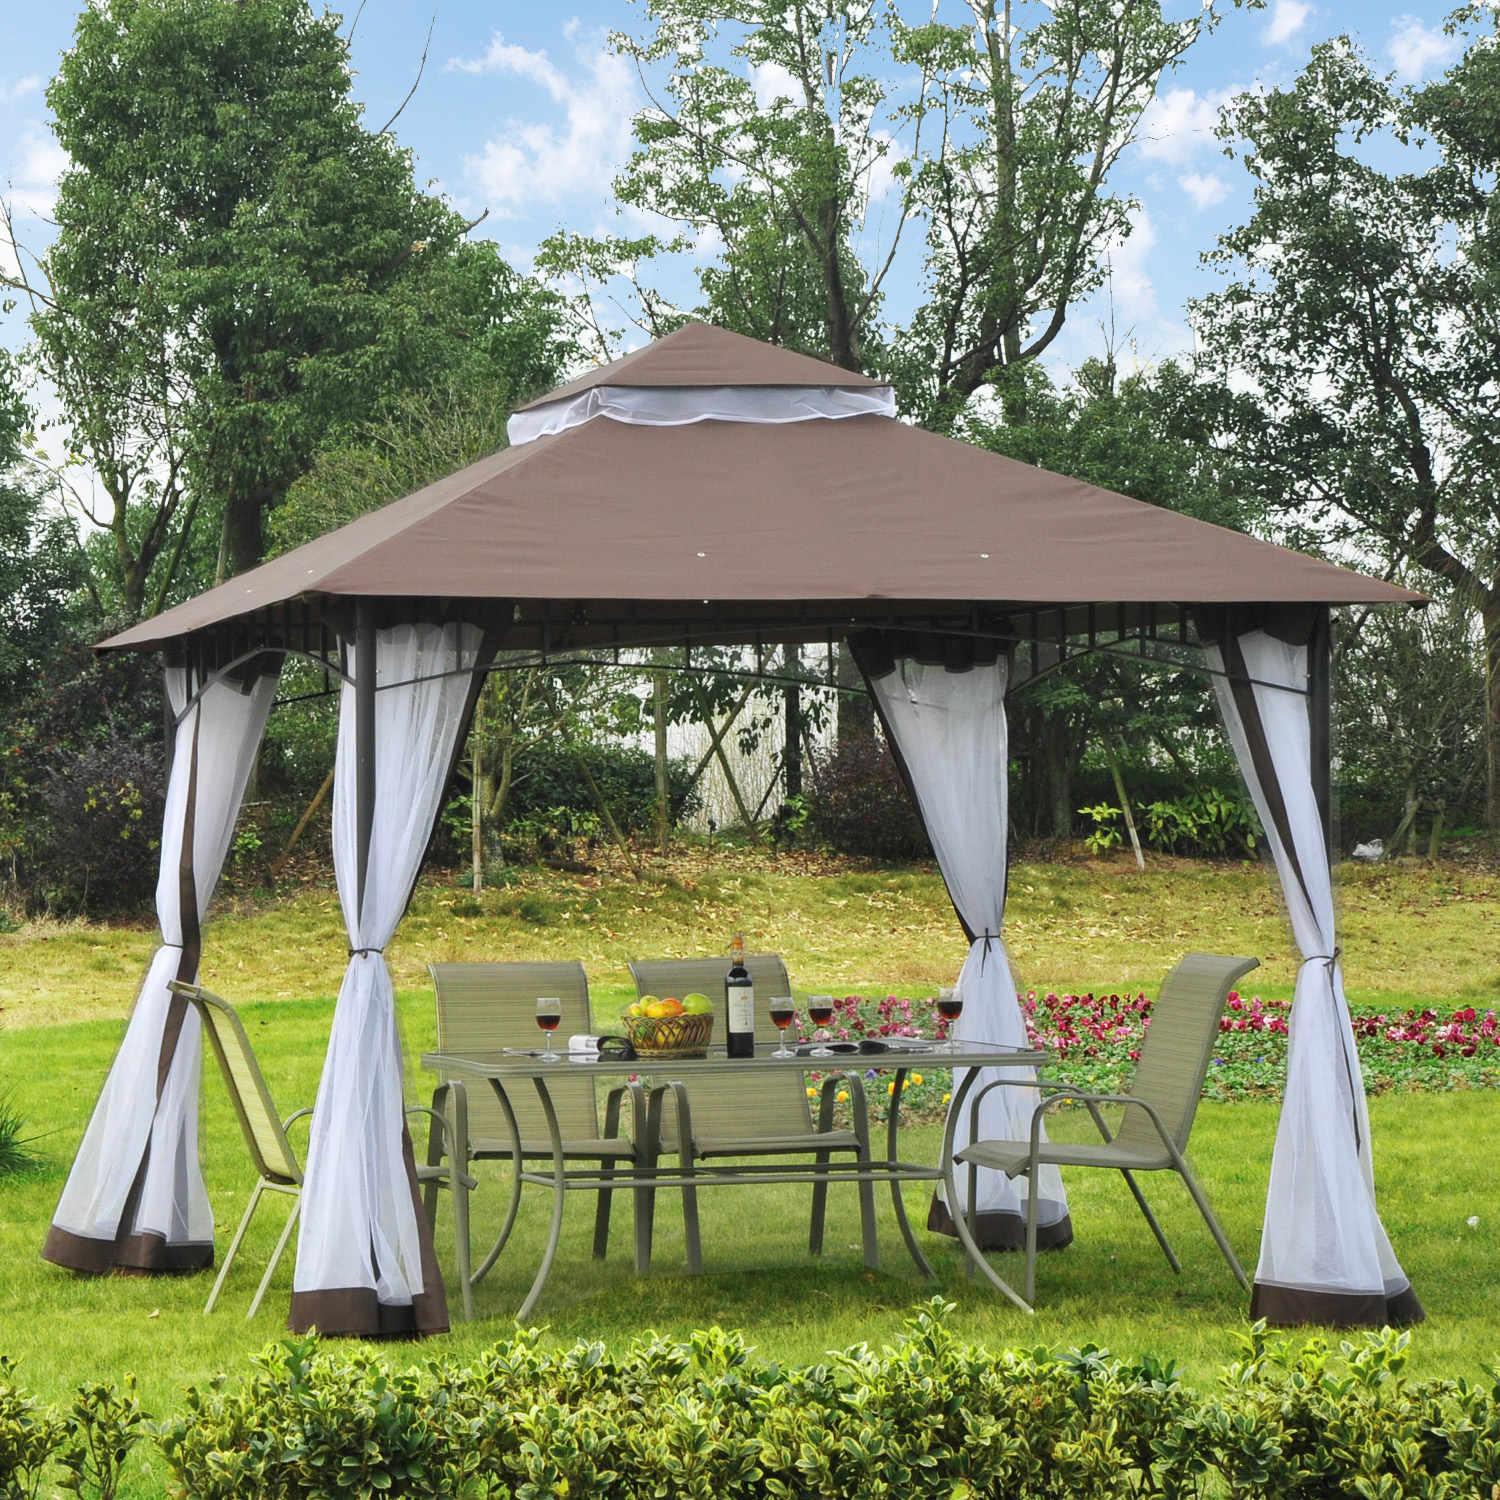 Image of CAD $209.99 Outsunny Garden Gazebo Canopy w/ Mesh Sidewalls Outdoor Sunshade Tent / 10x10ft Double Tier Water-Resistant Anti-UV Roof with Metal Frame and Double-Tier Party Screen Canada 95509793621